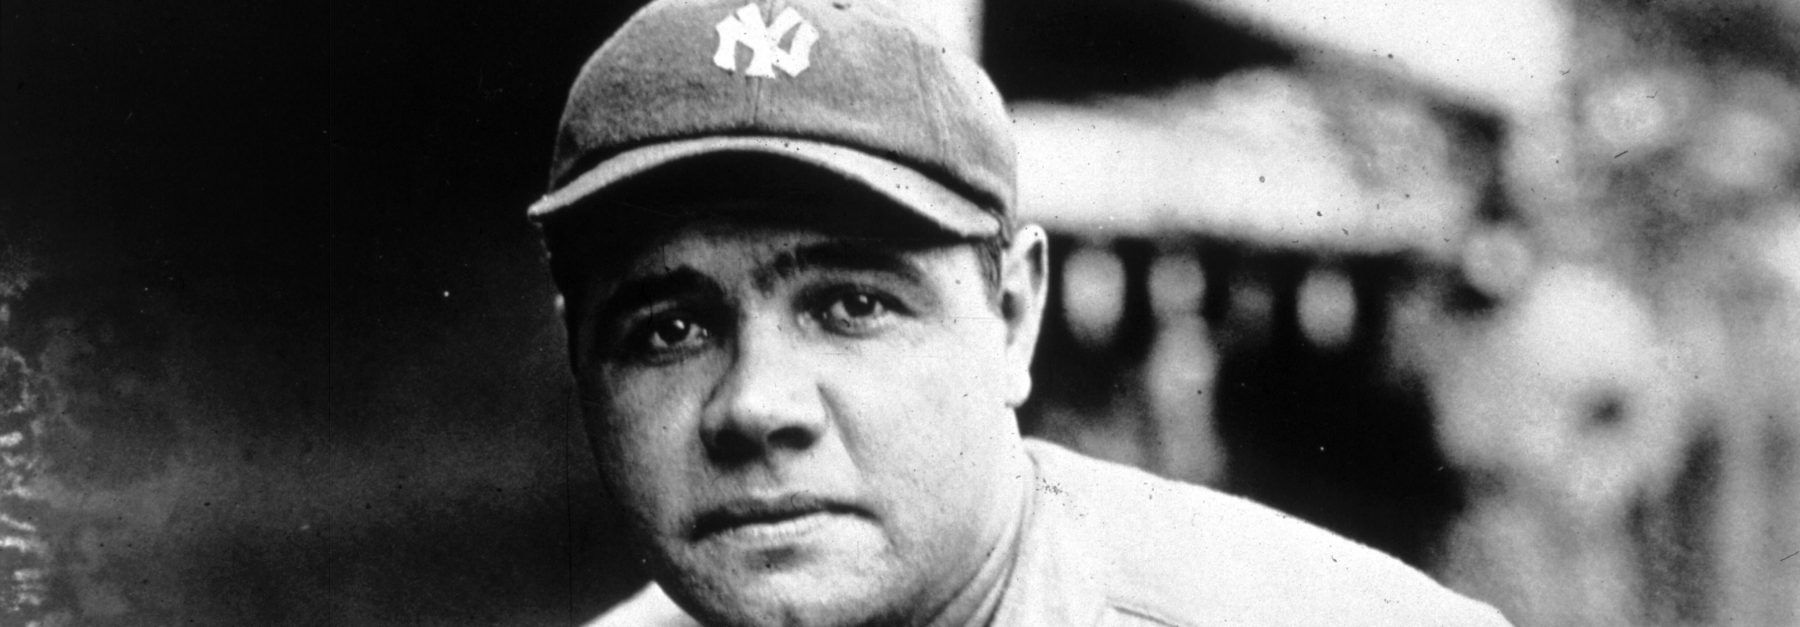 American baseball player George Herman Ruth (MPI/Getty Images)